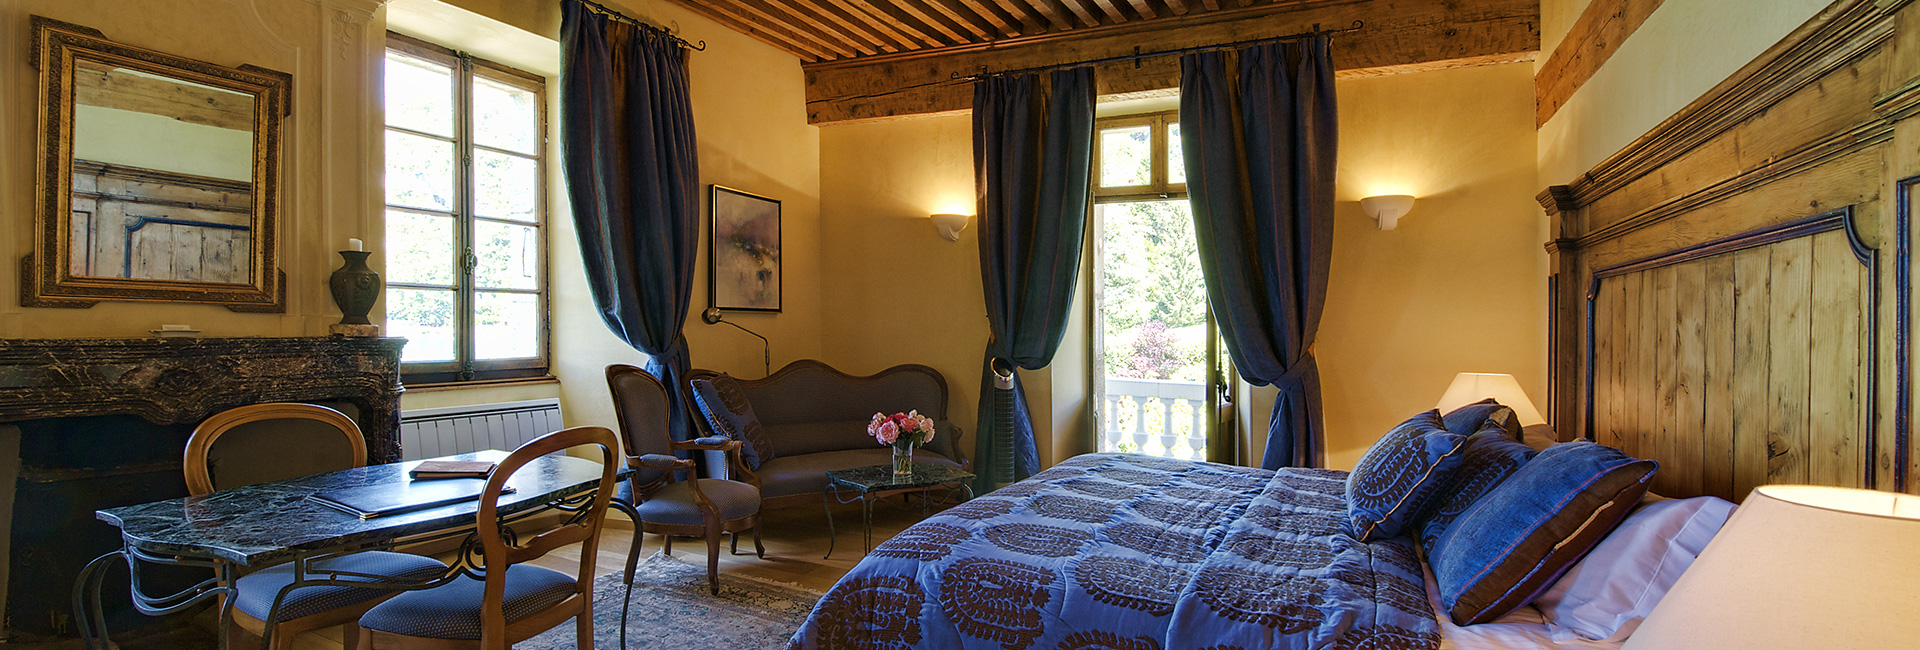 Chambre Annecy Chambres Hotel Annecy Suite Hotel Luxe Annecy Hotel Vue Lac